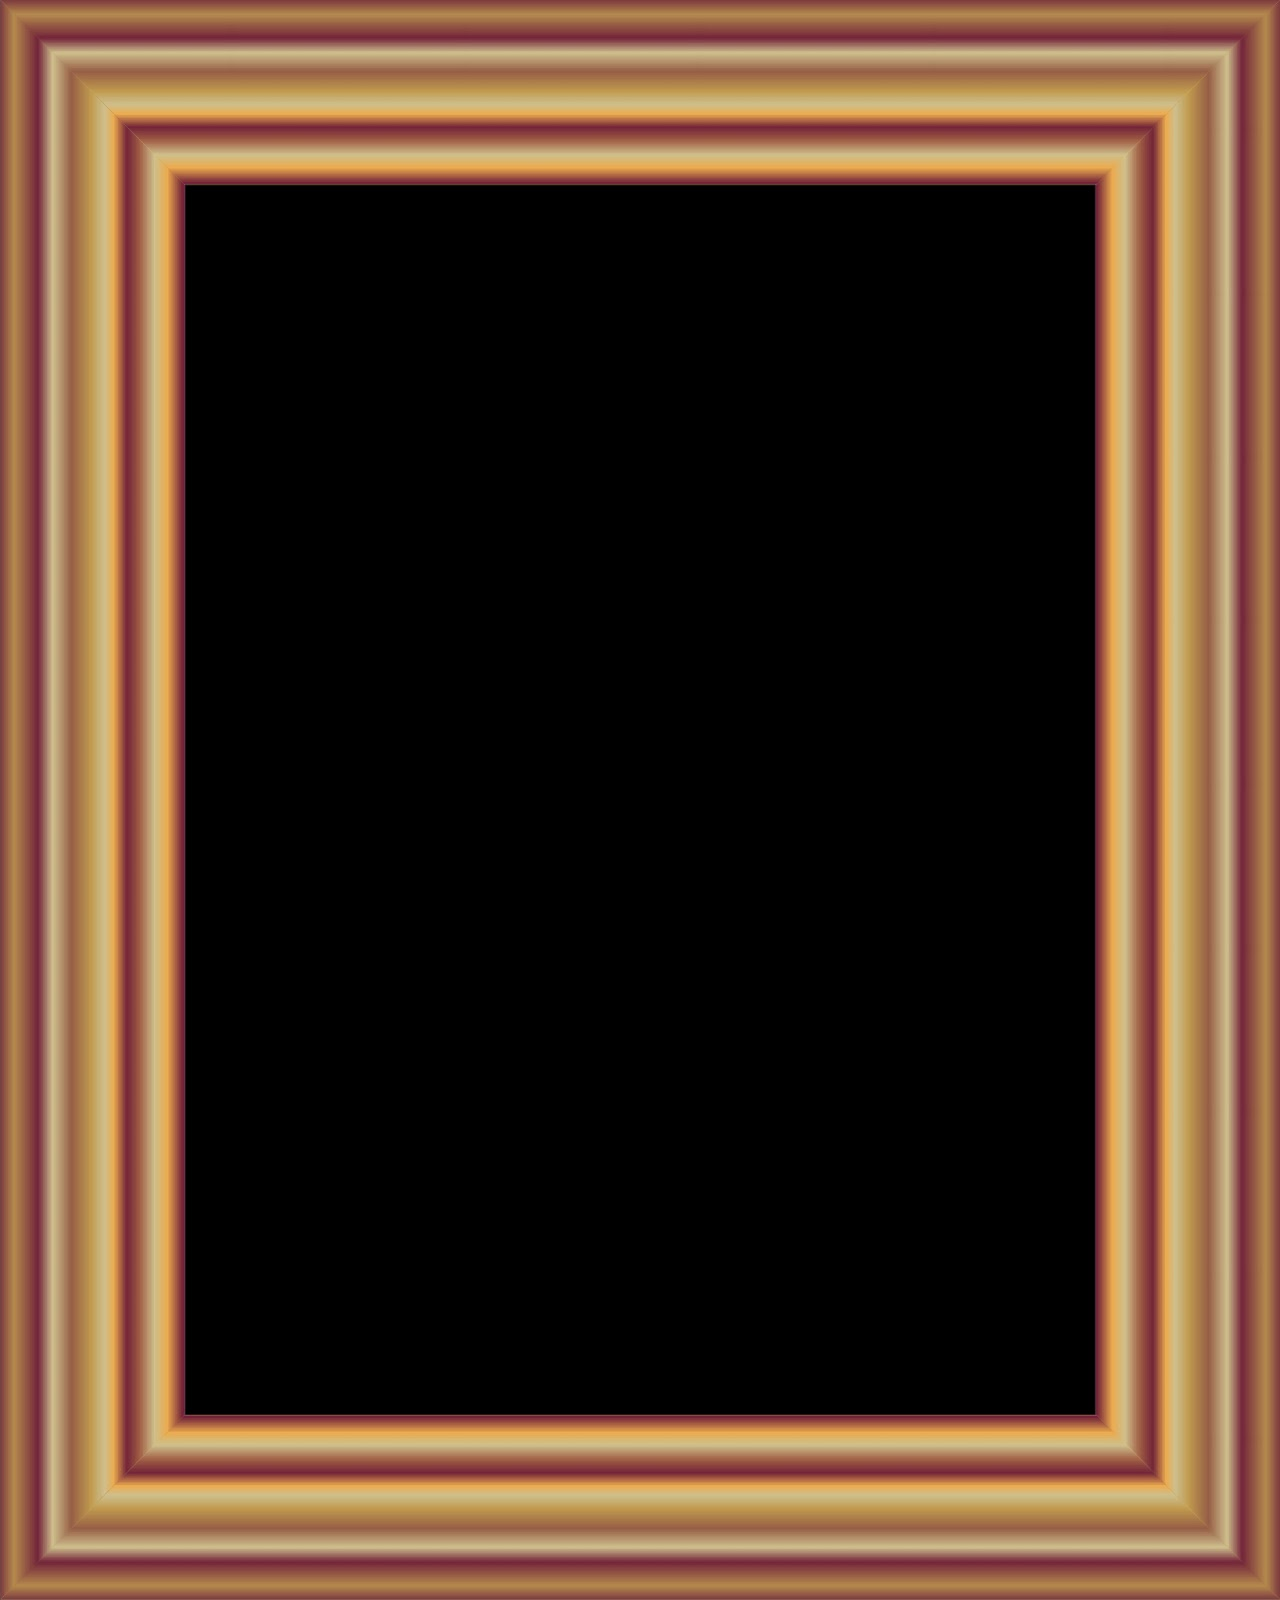 Picture Frames 07